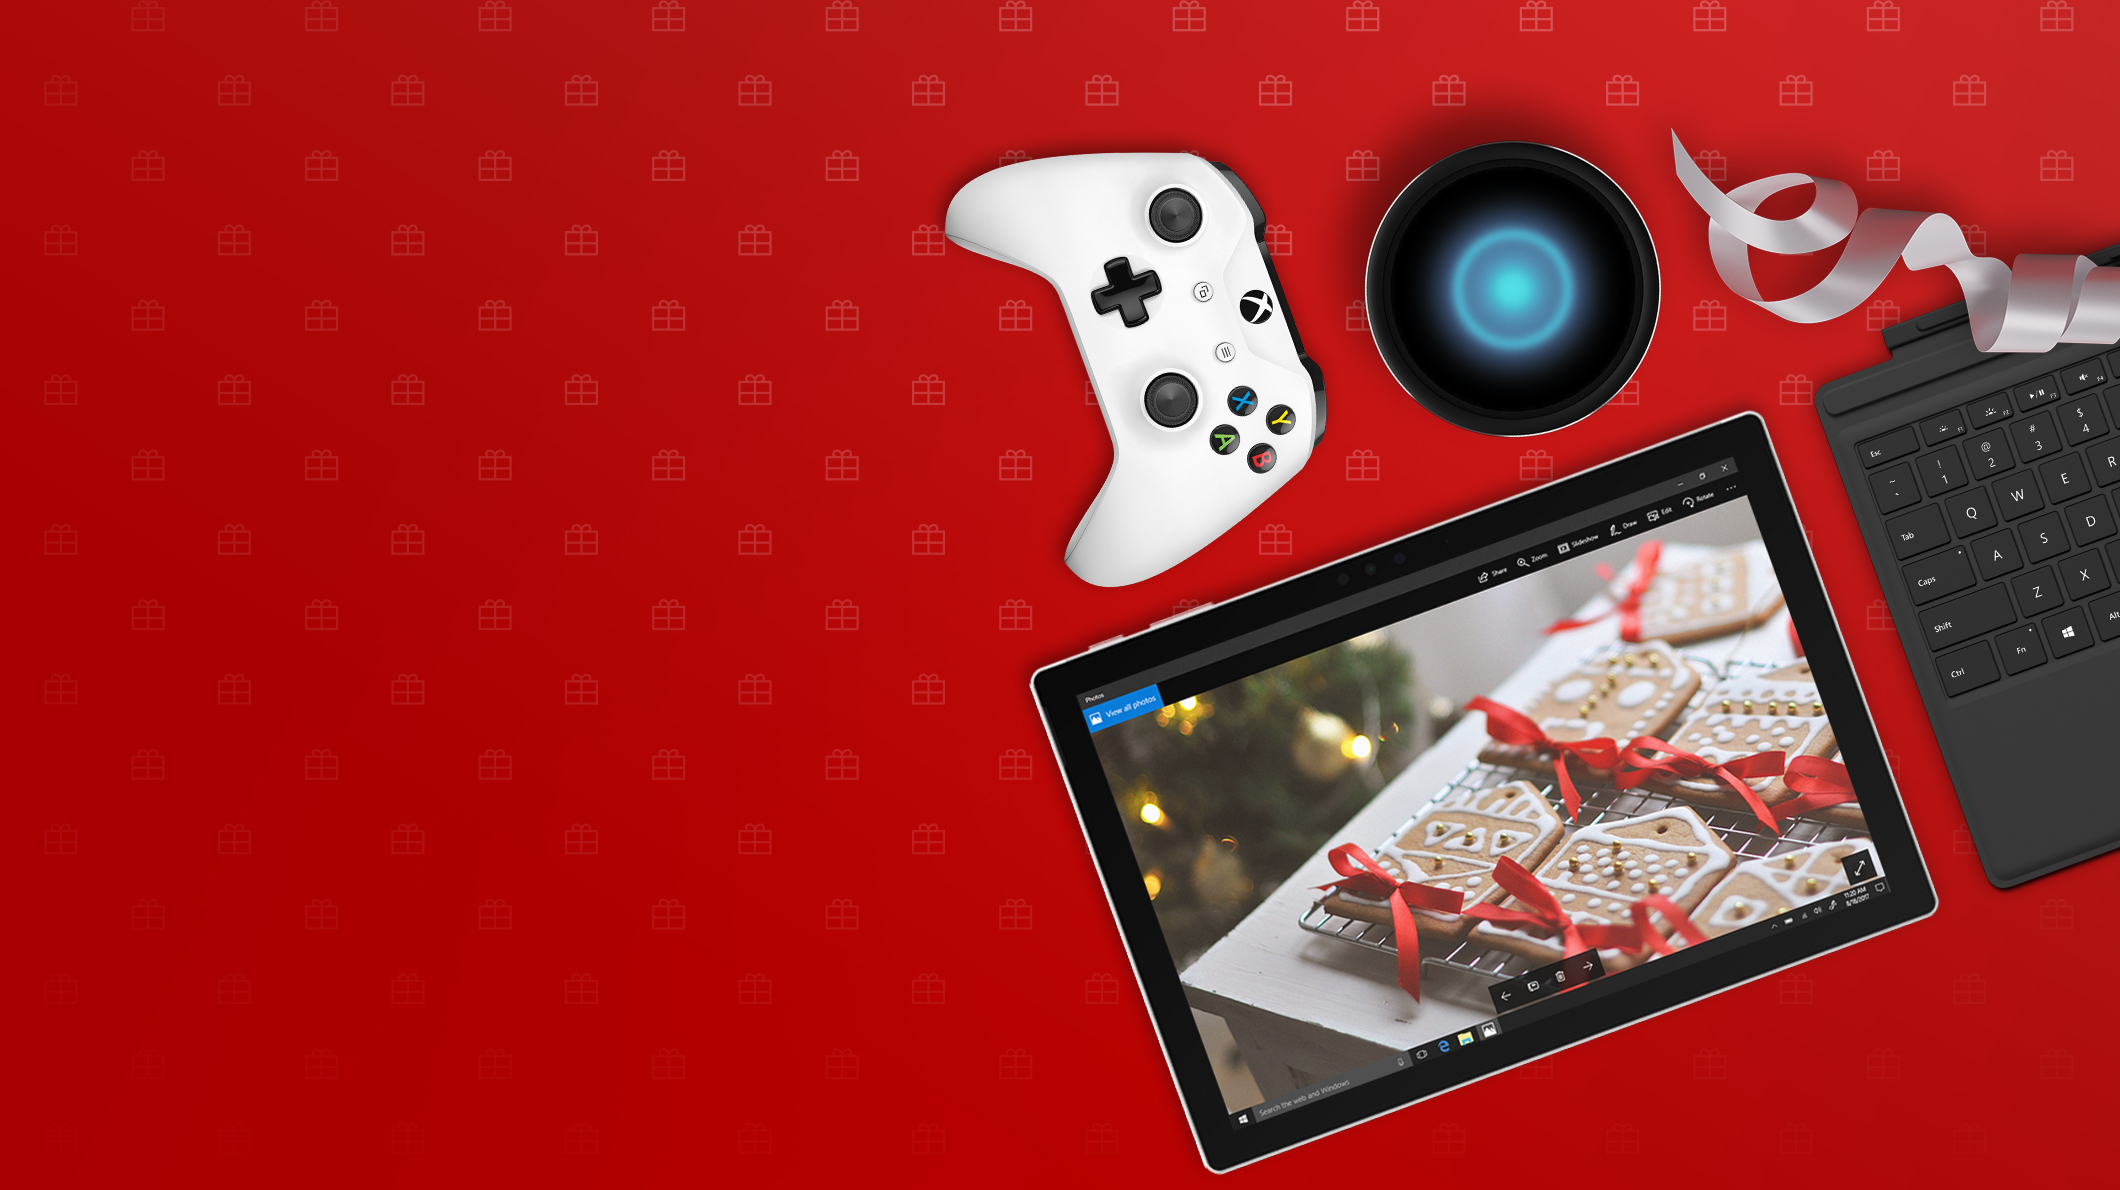 An array of technology including a Surface Pro, Xbox controller, and more